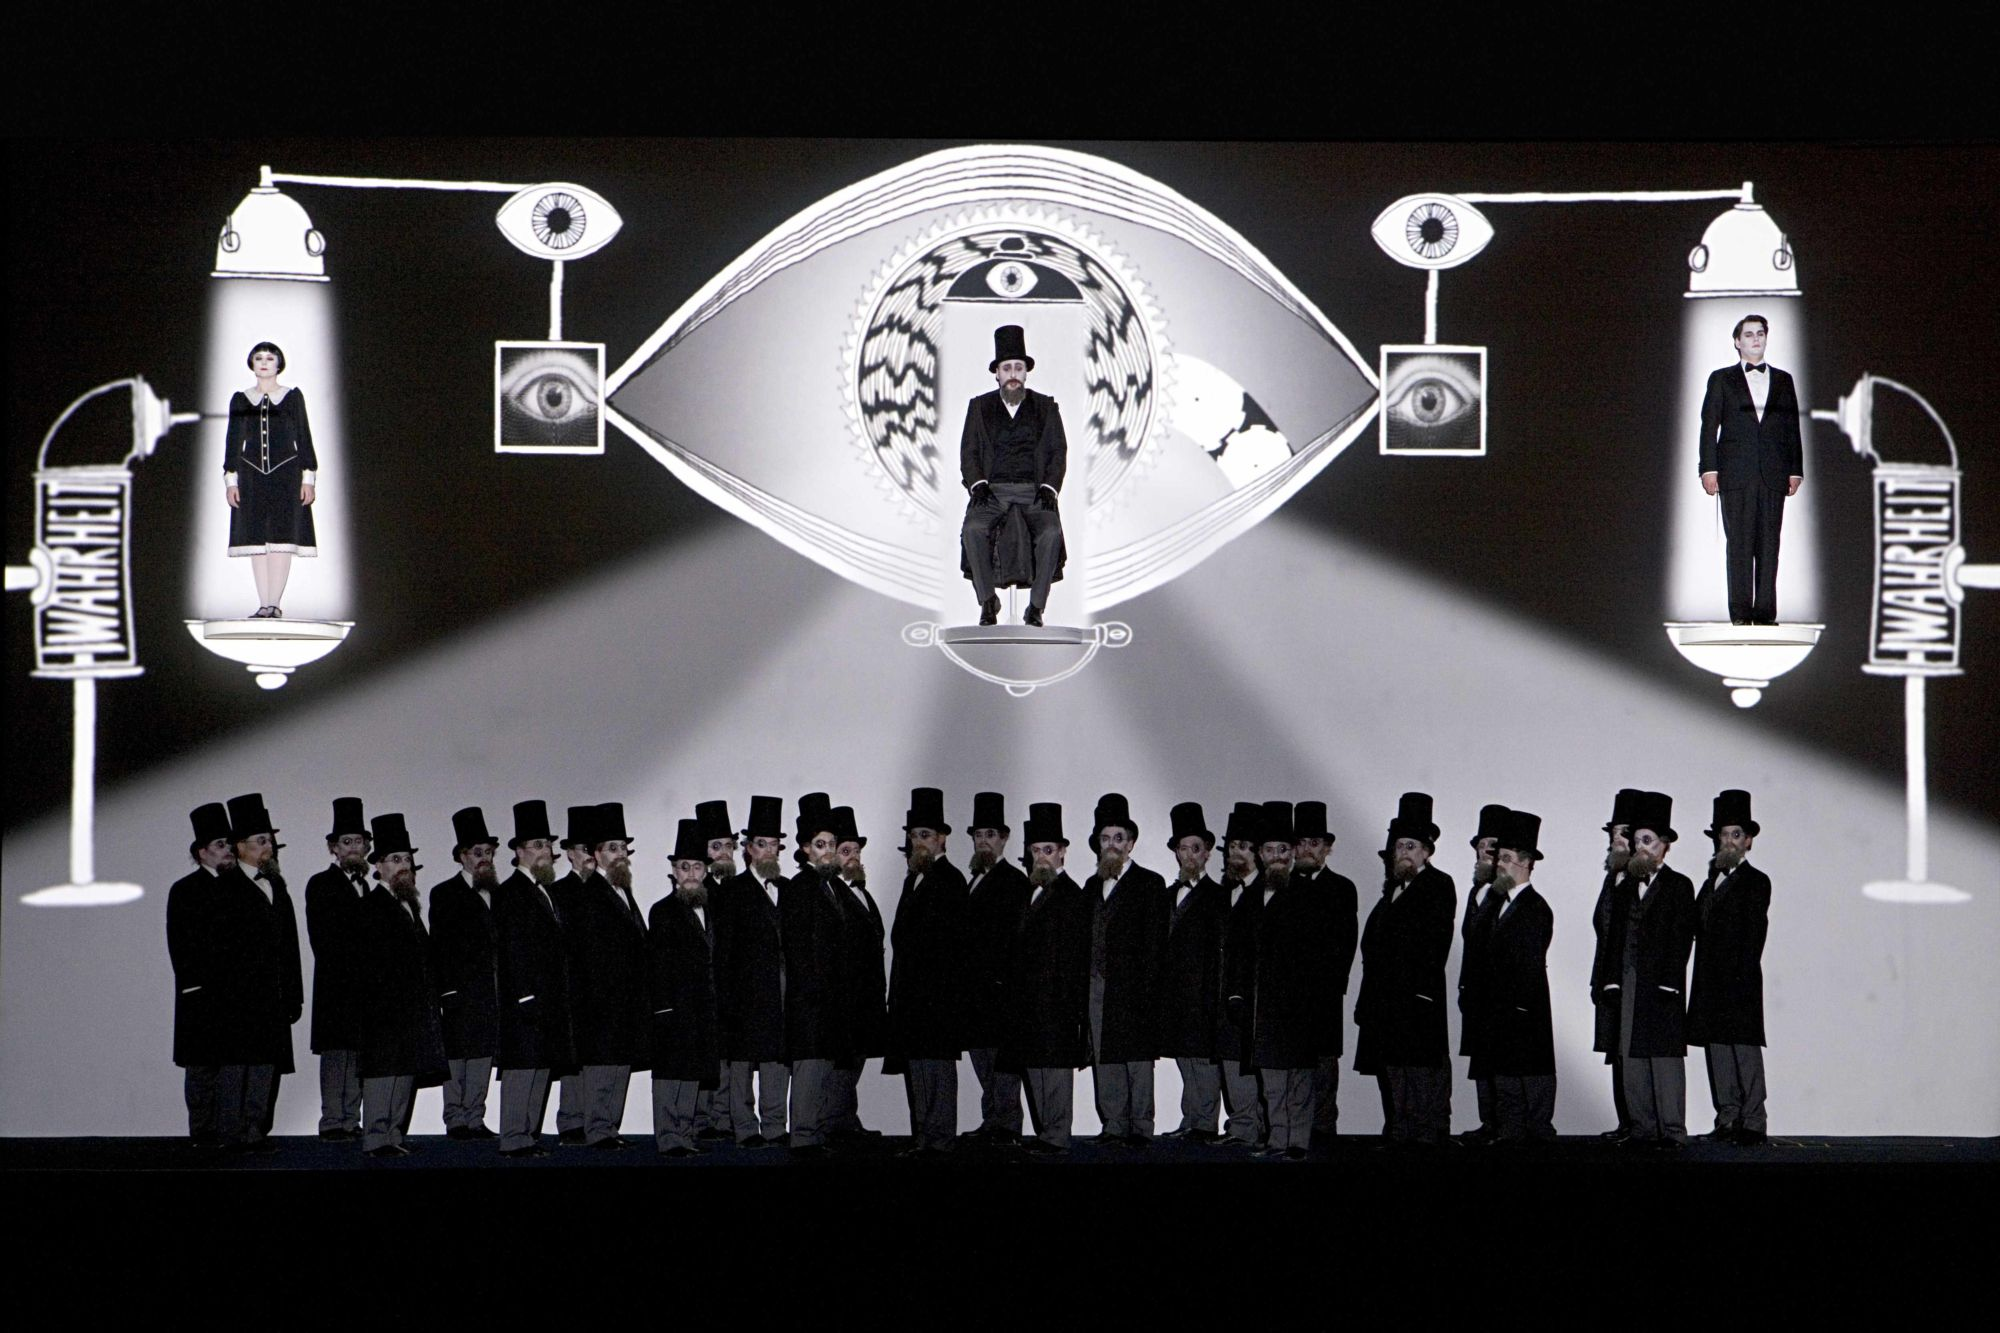 03_The Magic Flute(Photo Credit: Iko Freese_drama-berlin.de )